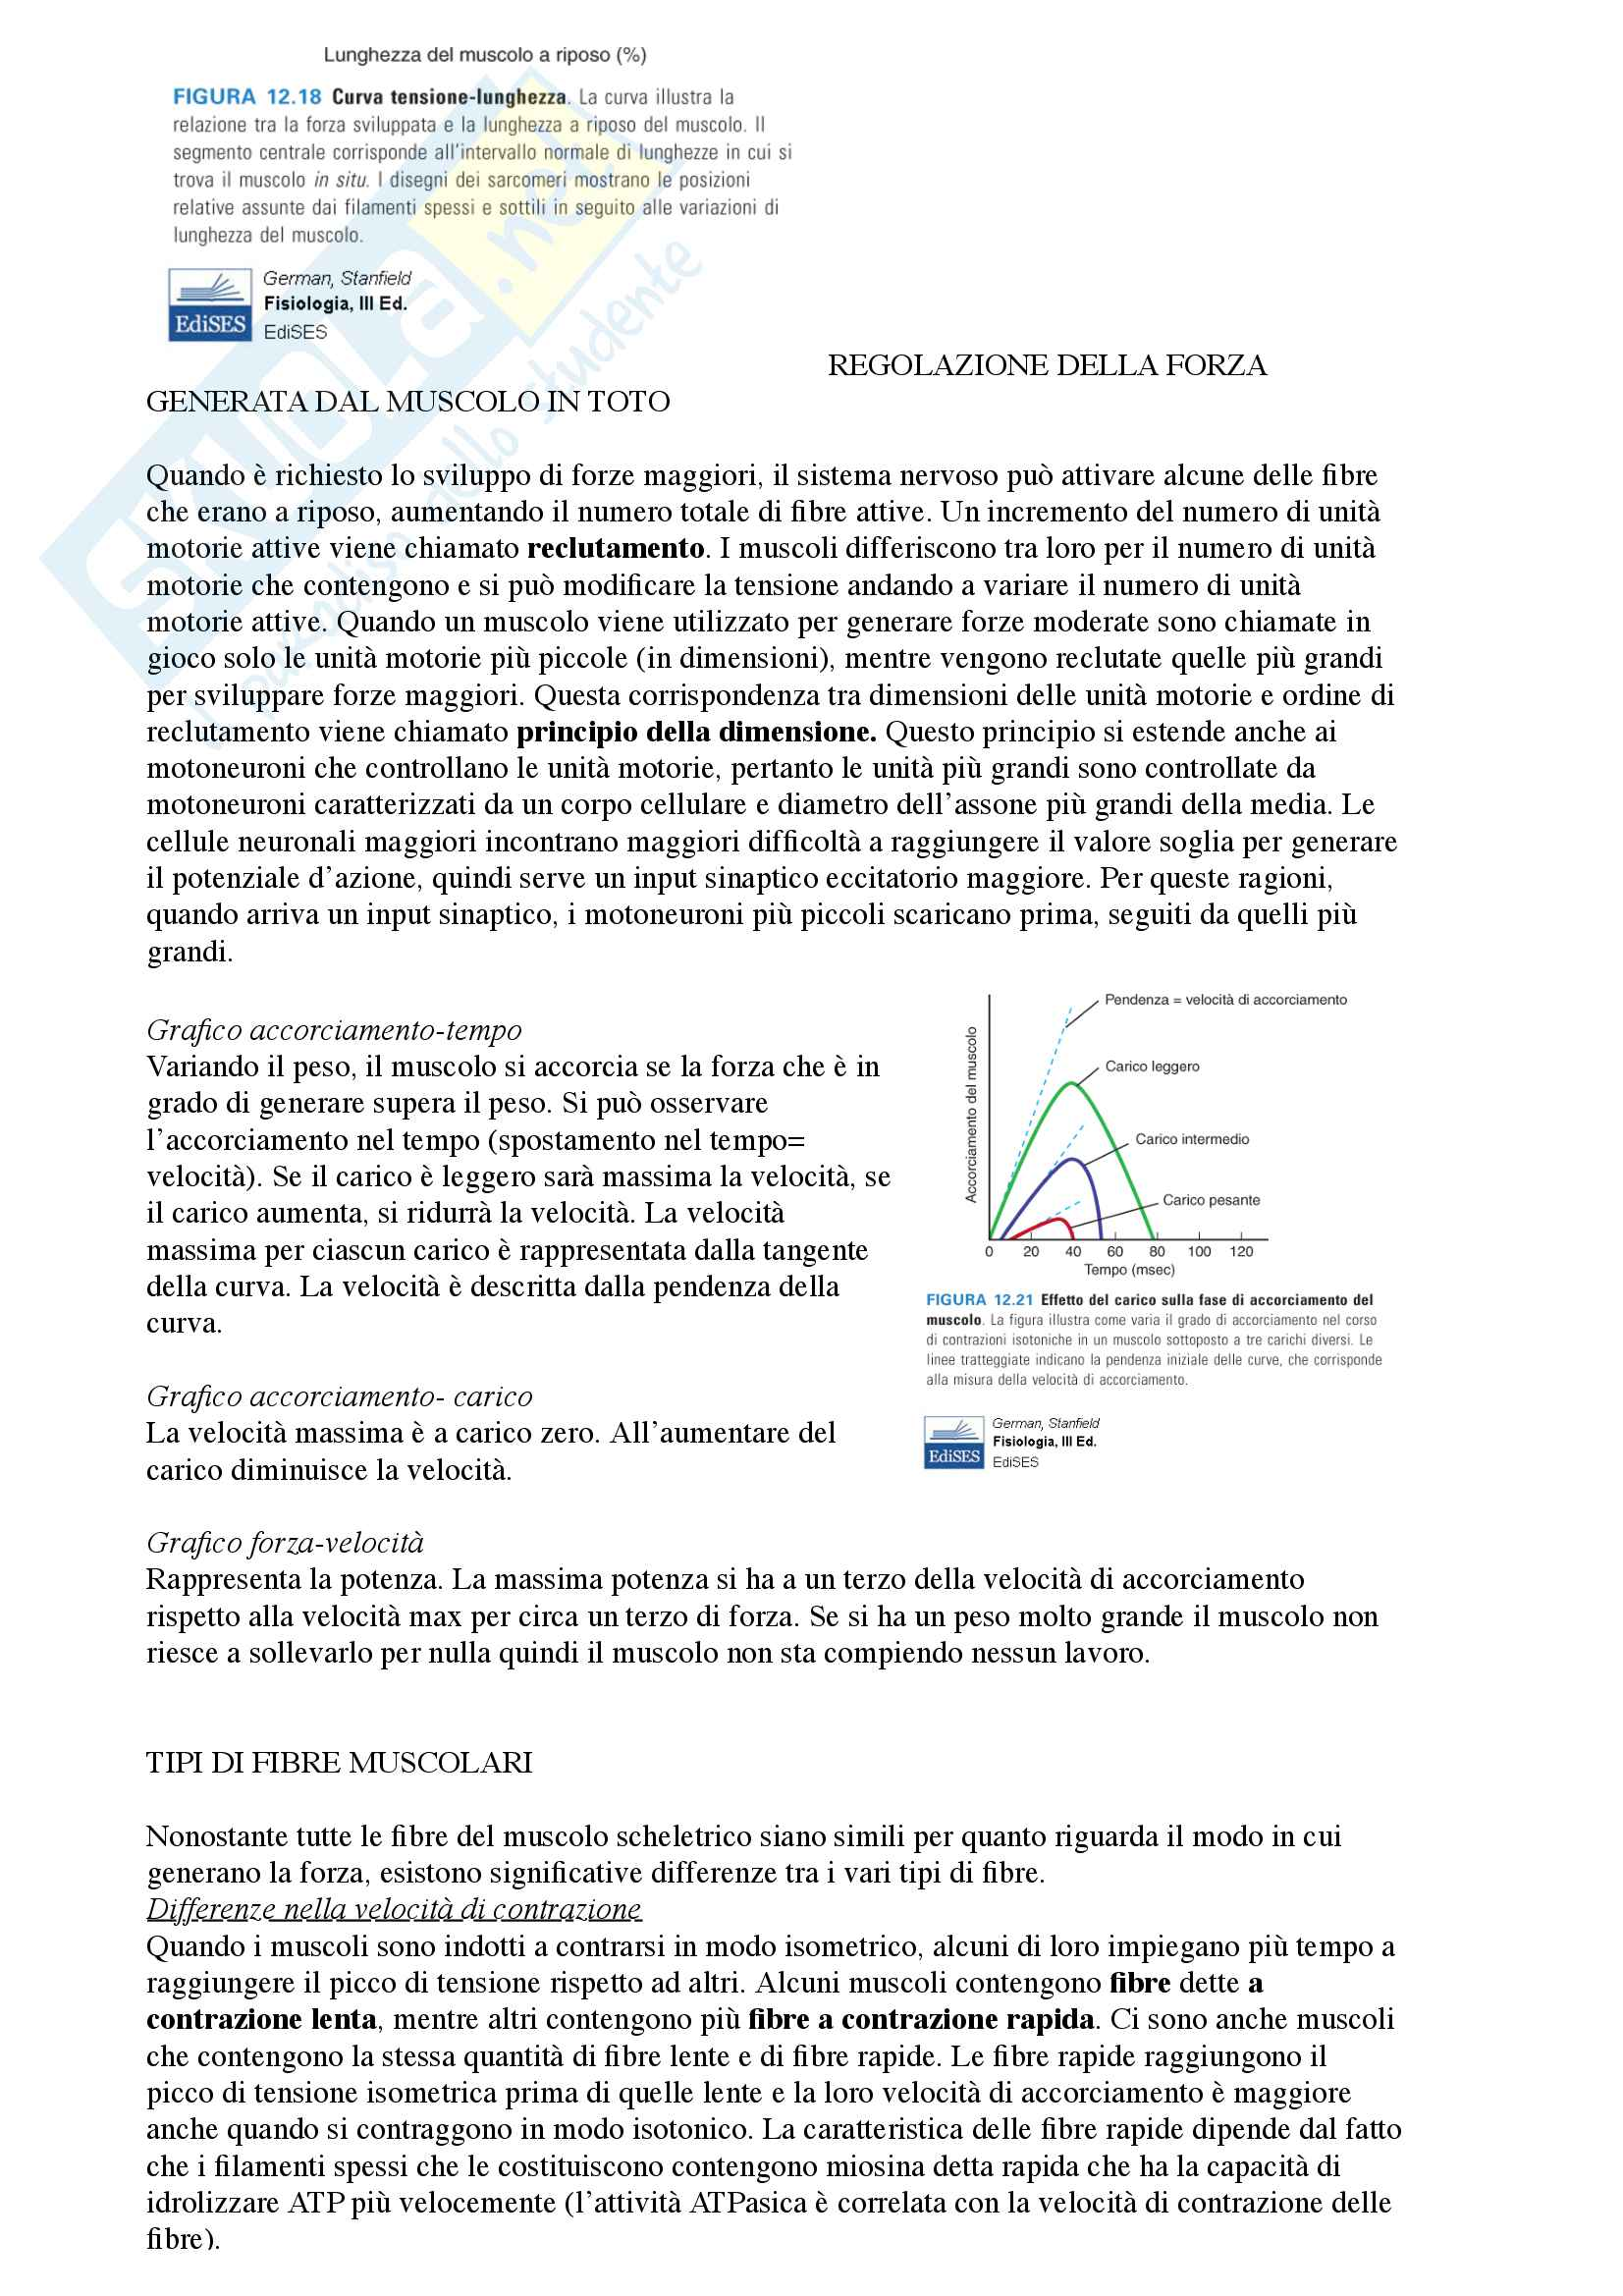 Fisiologia Pag. 21